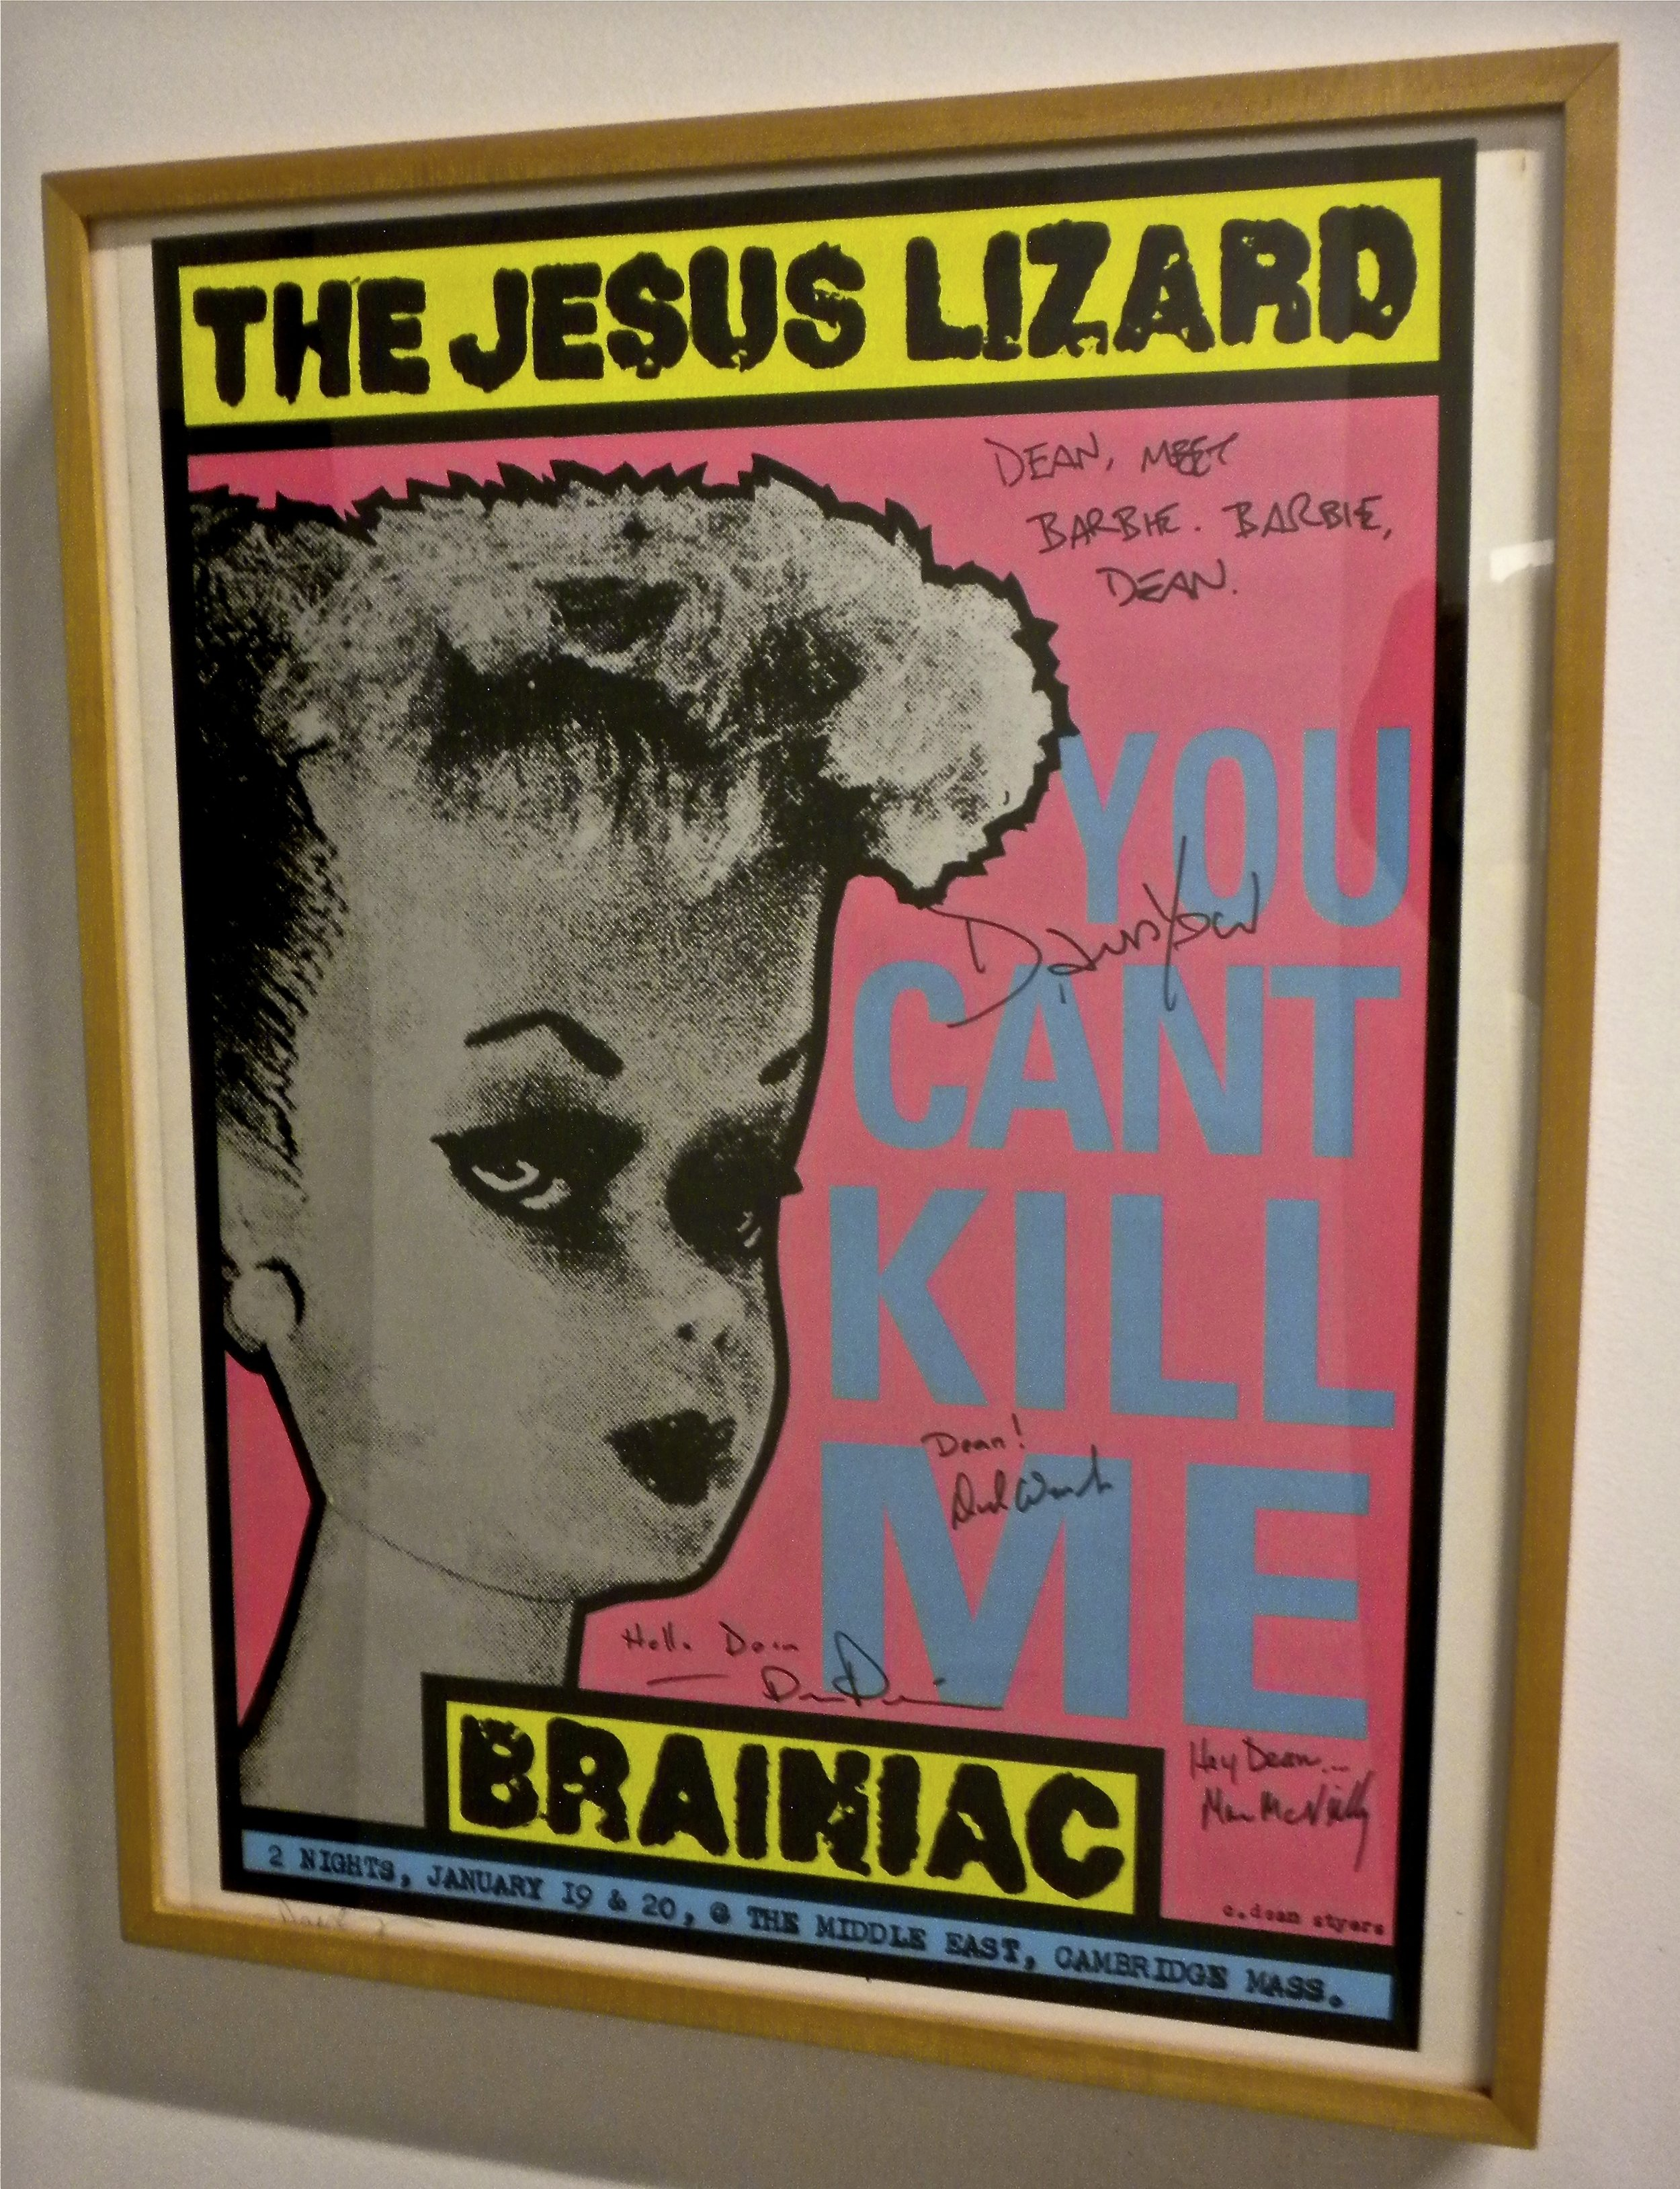 The Jesus Lizard/Brainiac poster design/screenprint.